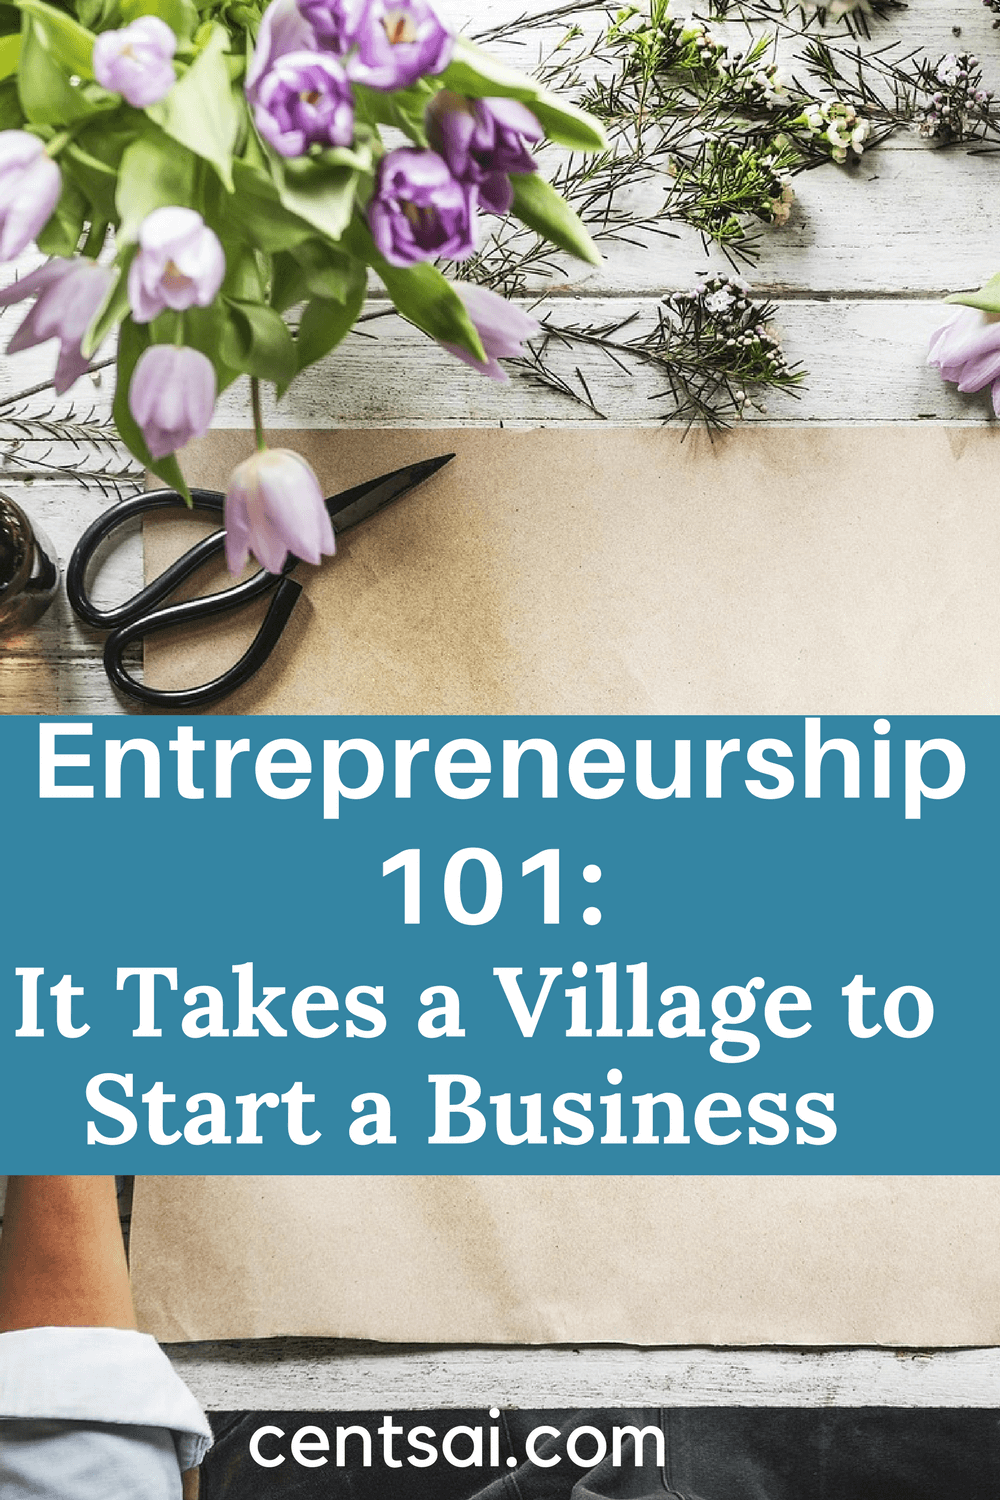 Entrepreneurship 101: It Takes a Village to Start a Business